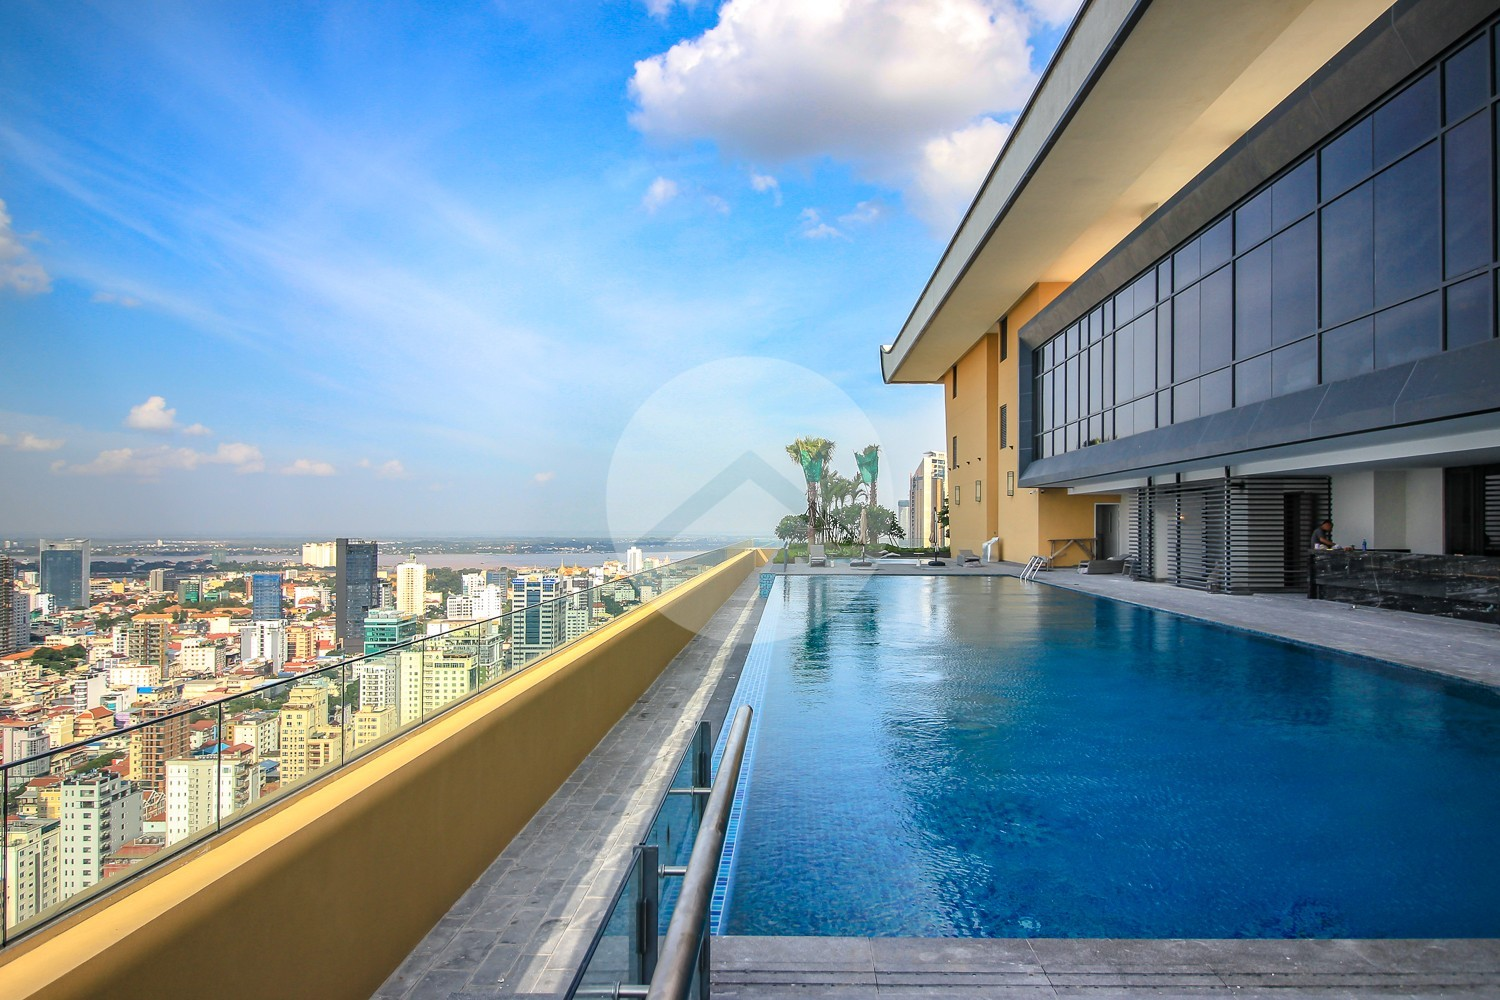 2 Bedroom Serviced Apartment For Rent - Olympic, Phnom Penh